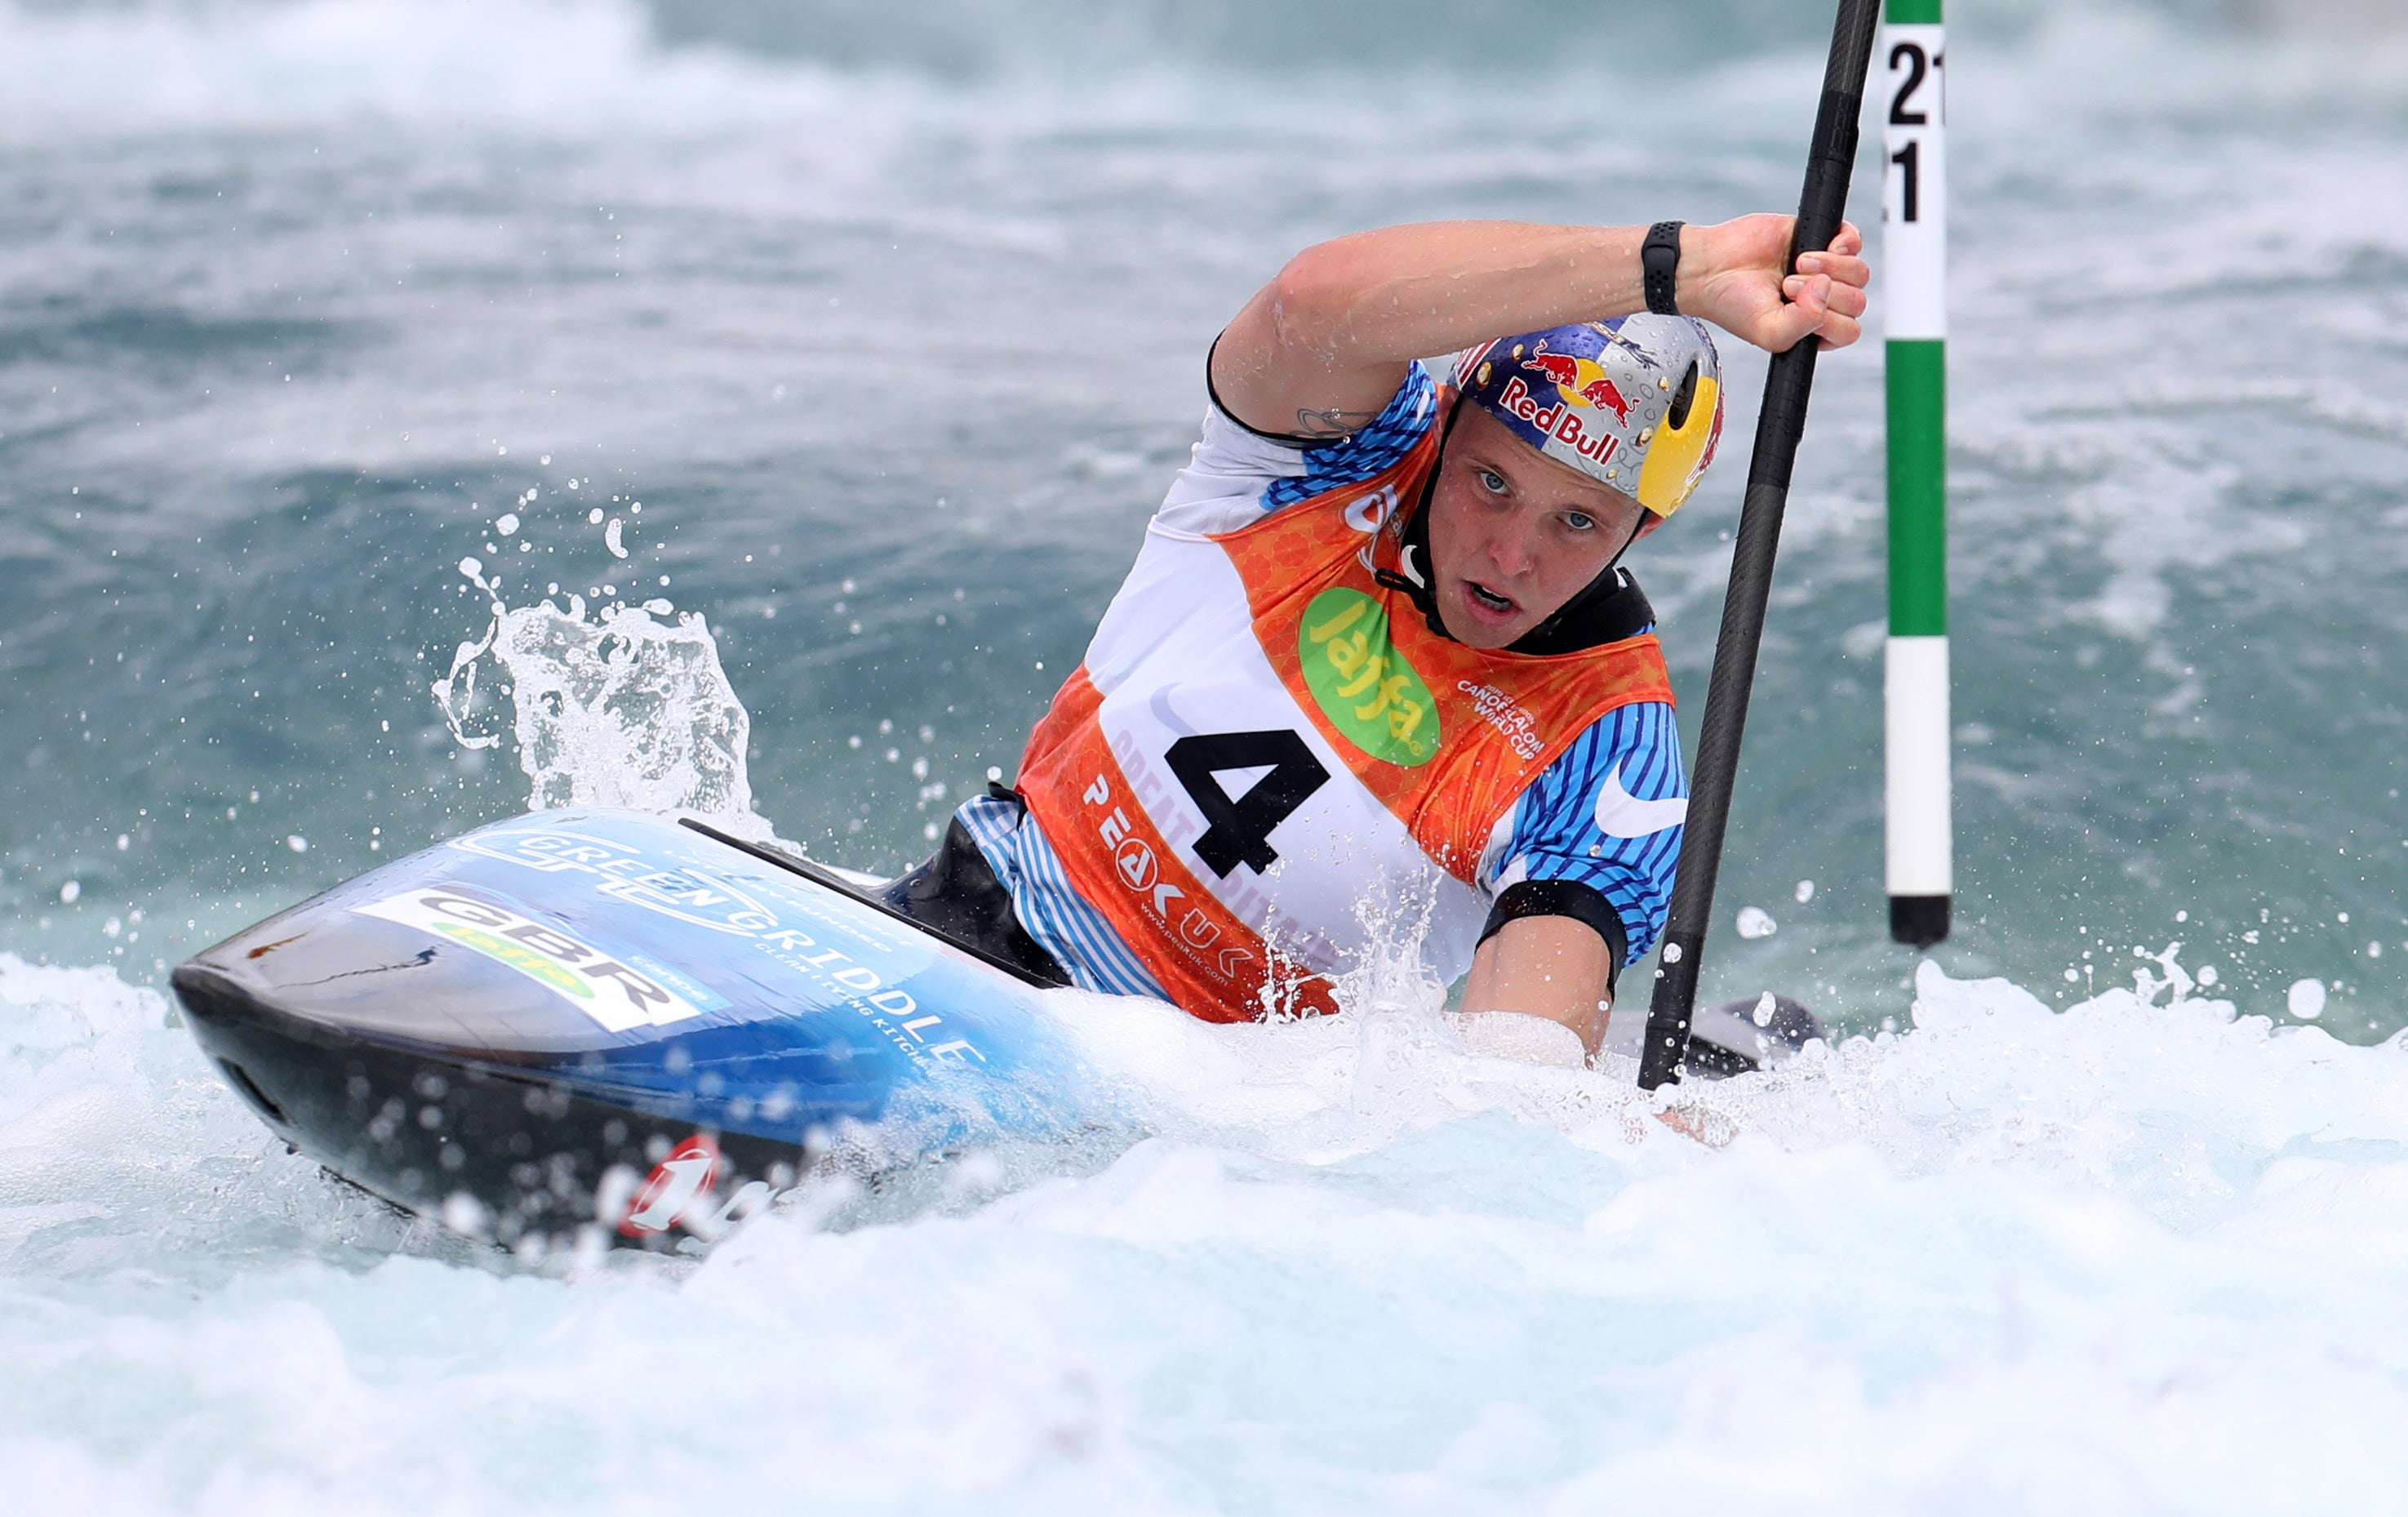 independent.co.uk - Prudence Wade - Tokyo Olympics: 5 niche sports to really get into this year